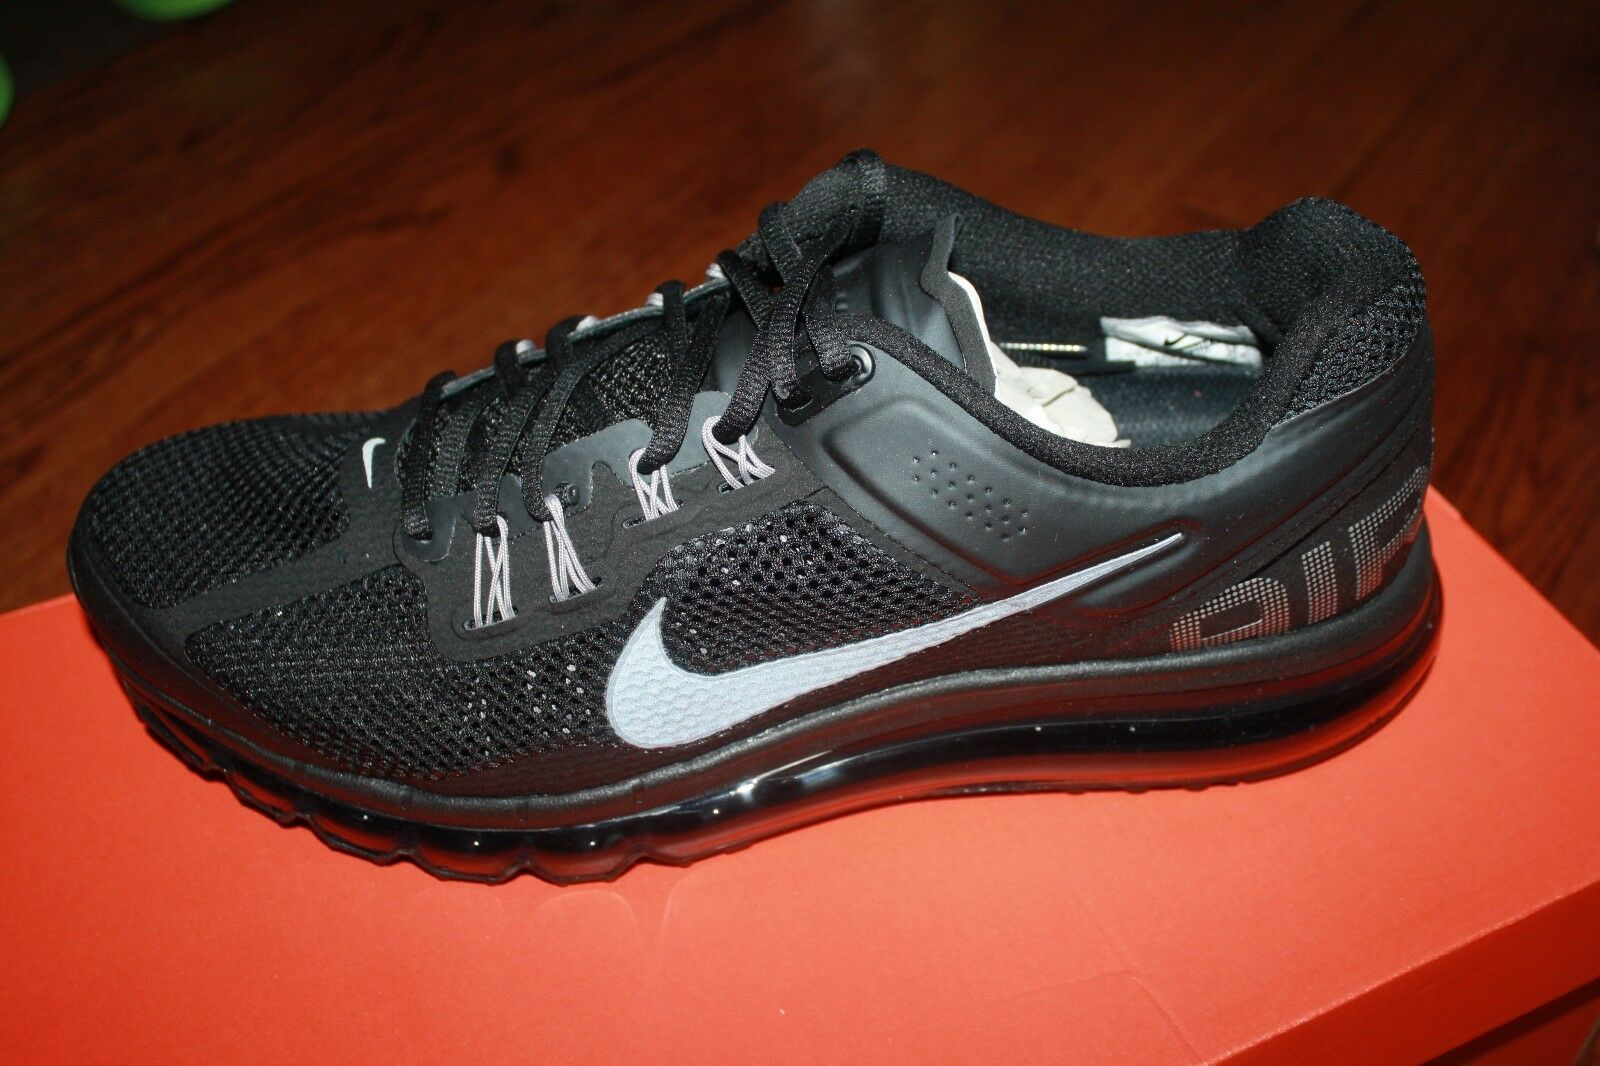 high quality NIKE MEN'S AIR MAX+ 2013 RUNNING SHOES BLACK